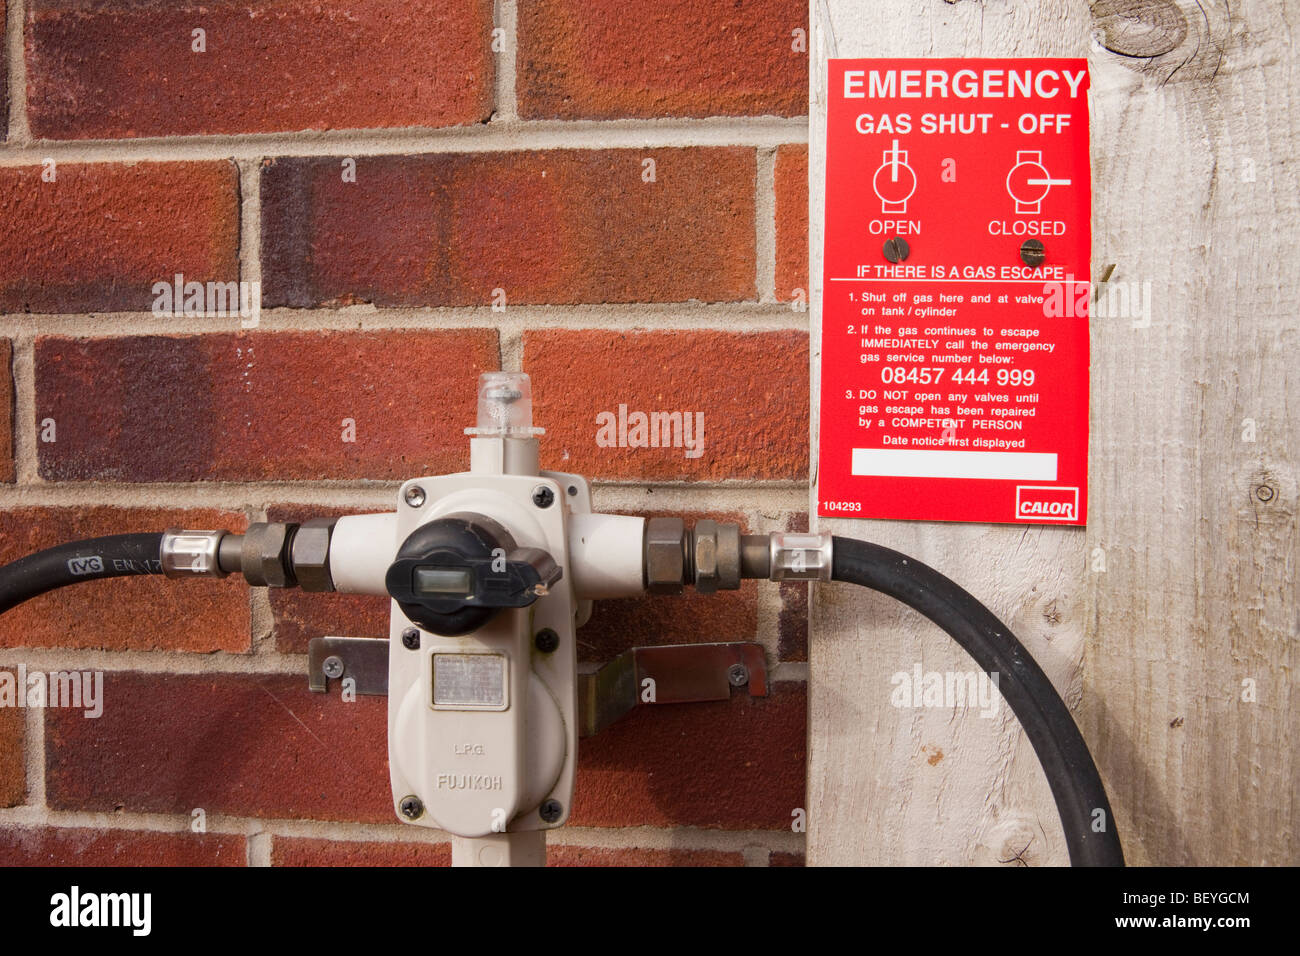 Britain, UK, Europe. Calor Gas two hose regulator valve fitting on an outside wall with emergency gas shut off instructions. - Stock Image